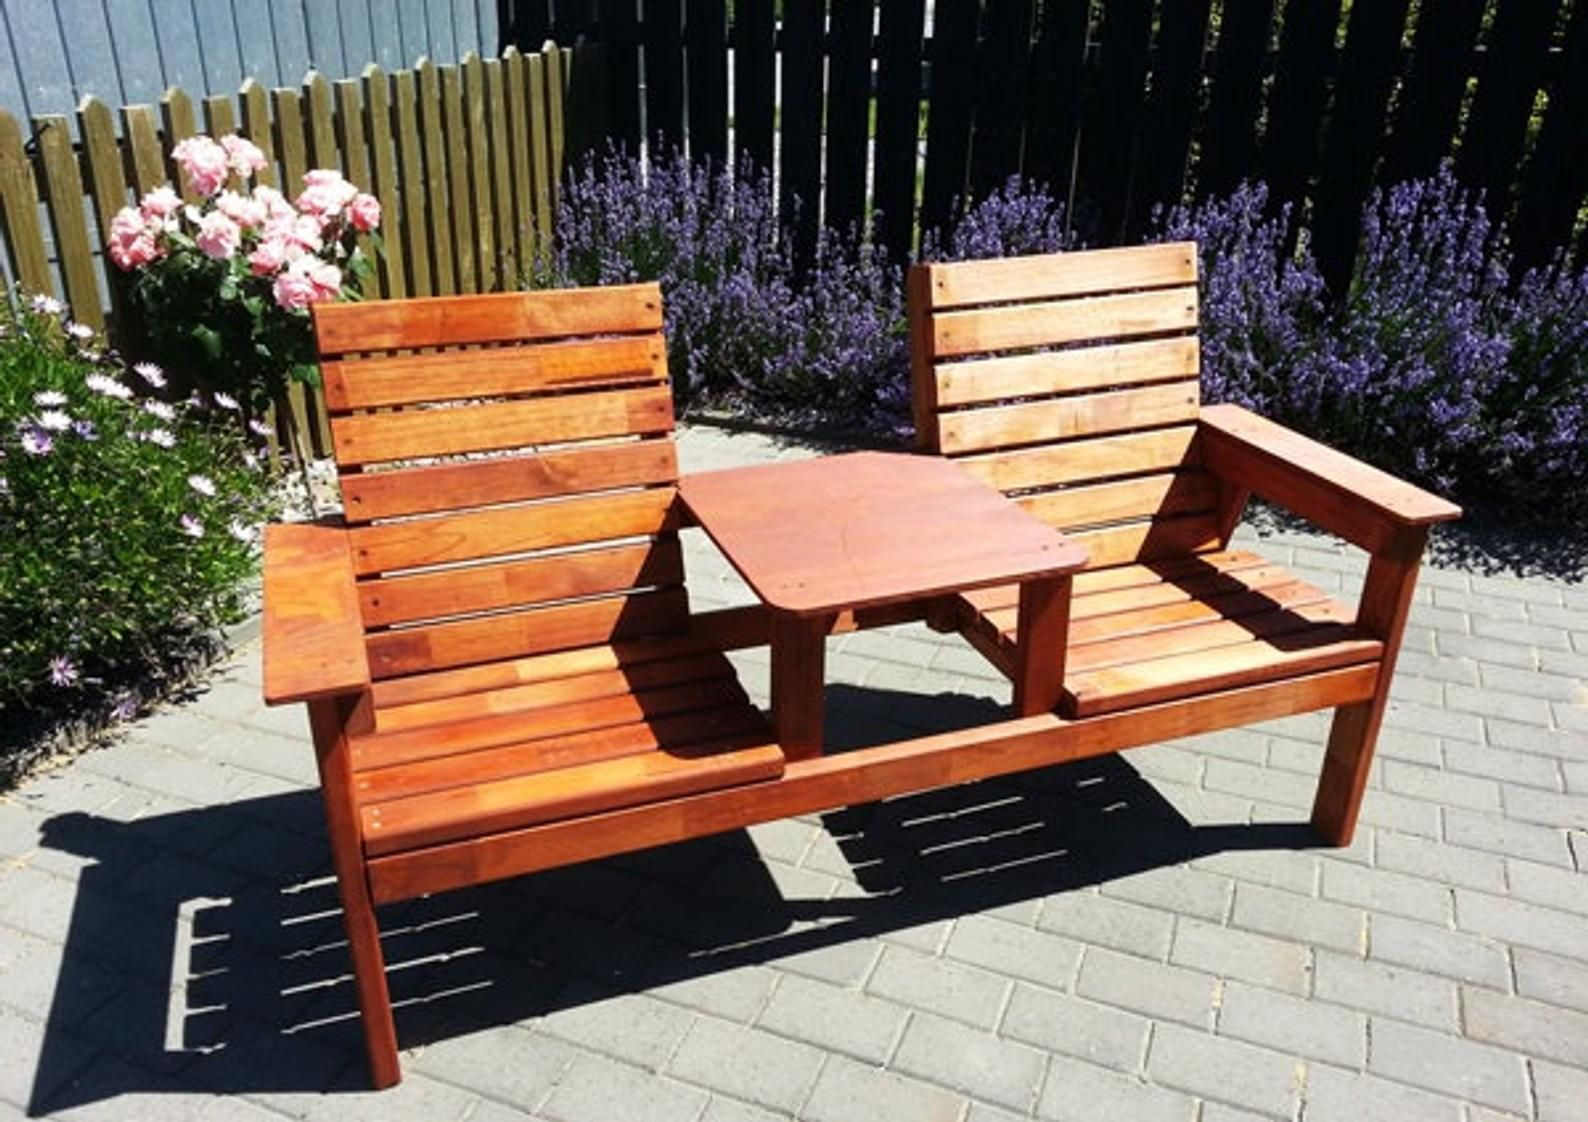 Double Seat Bench With Table Plans (With images) | Diy ...